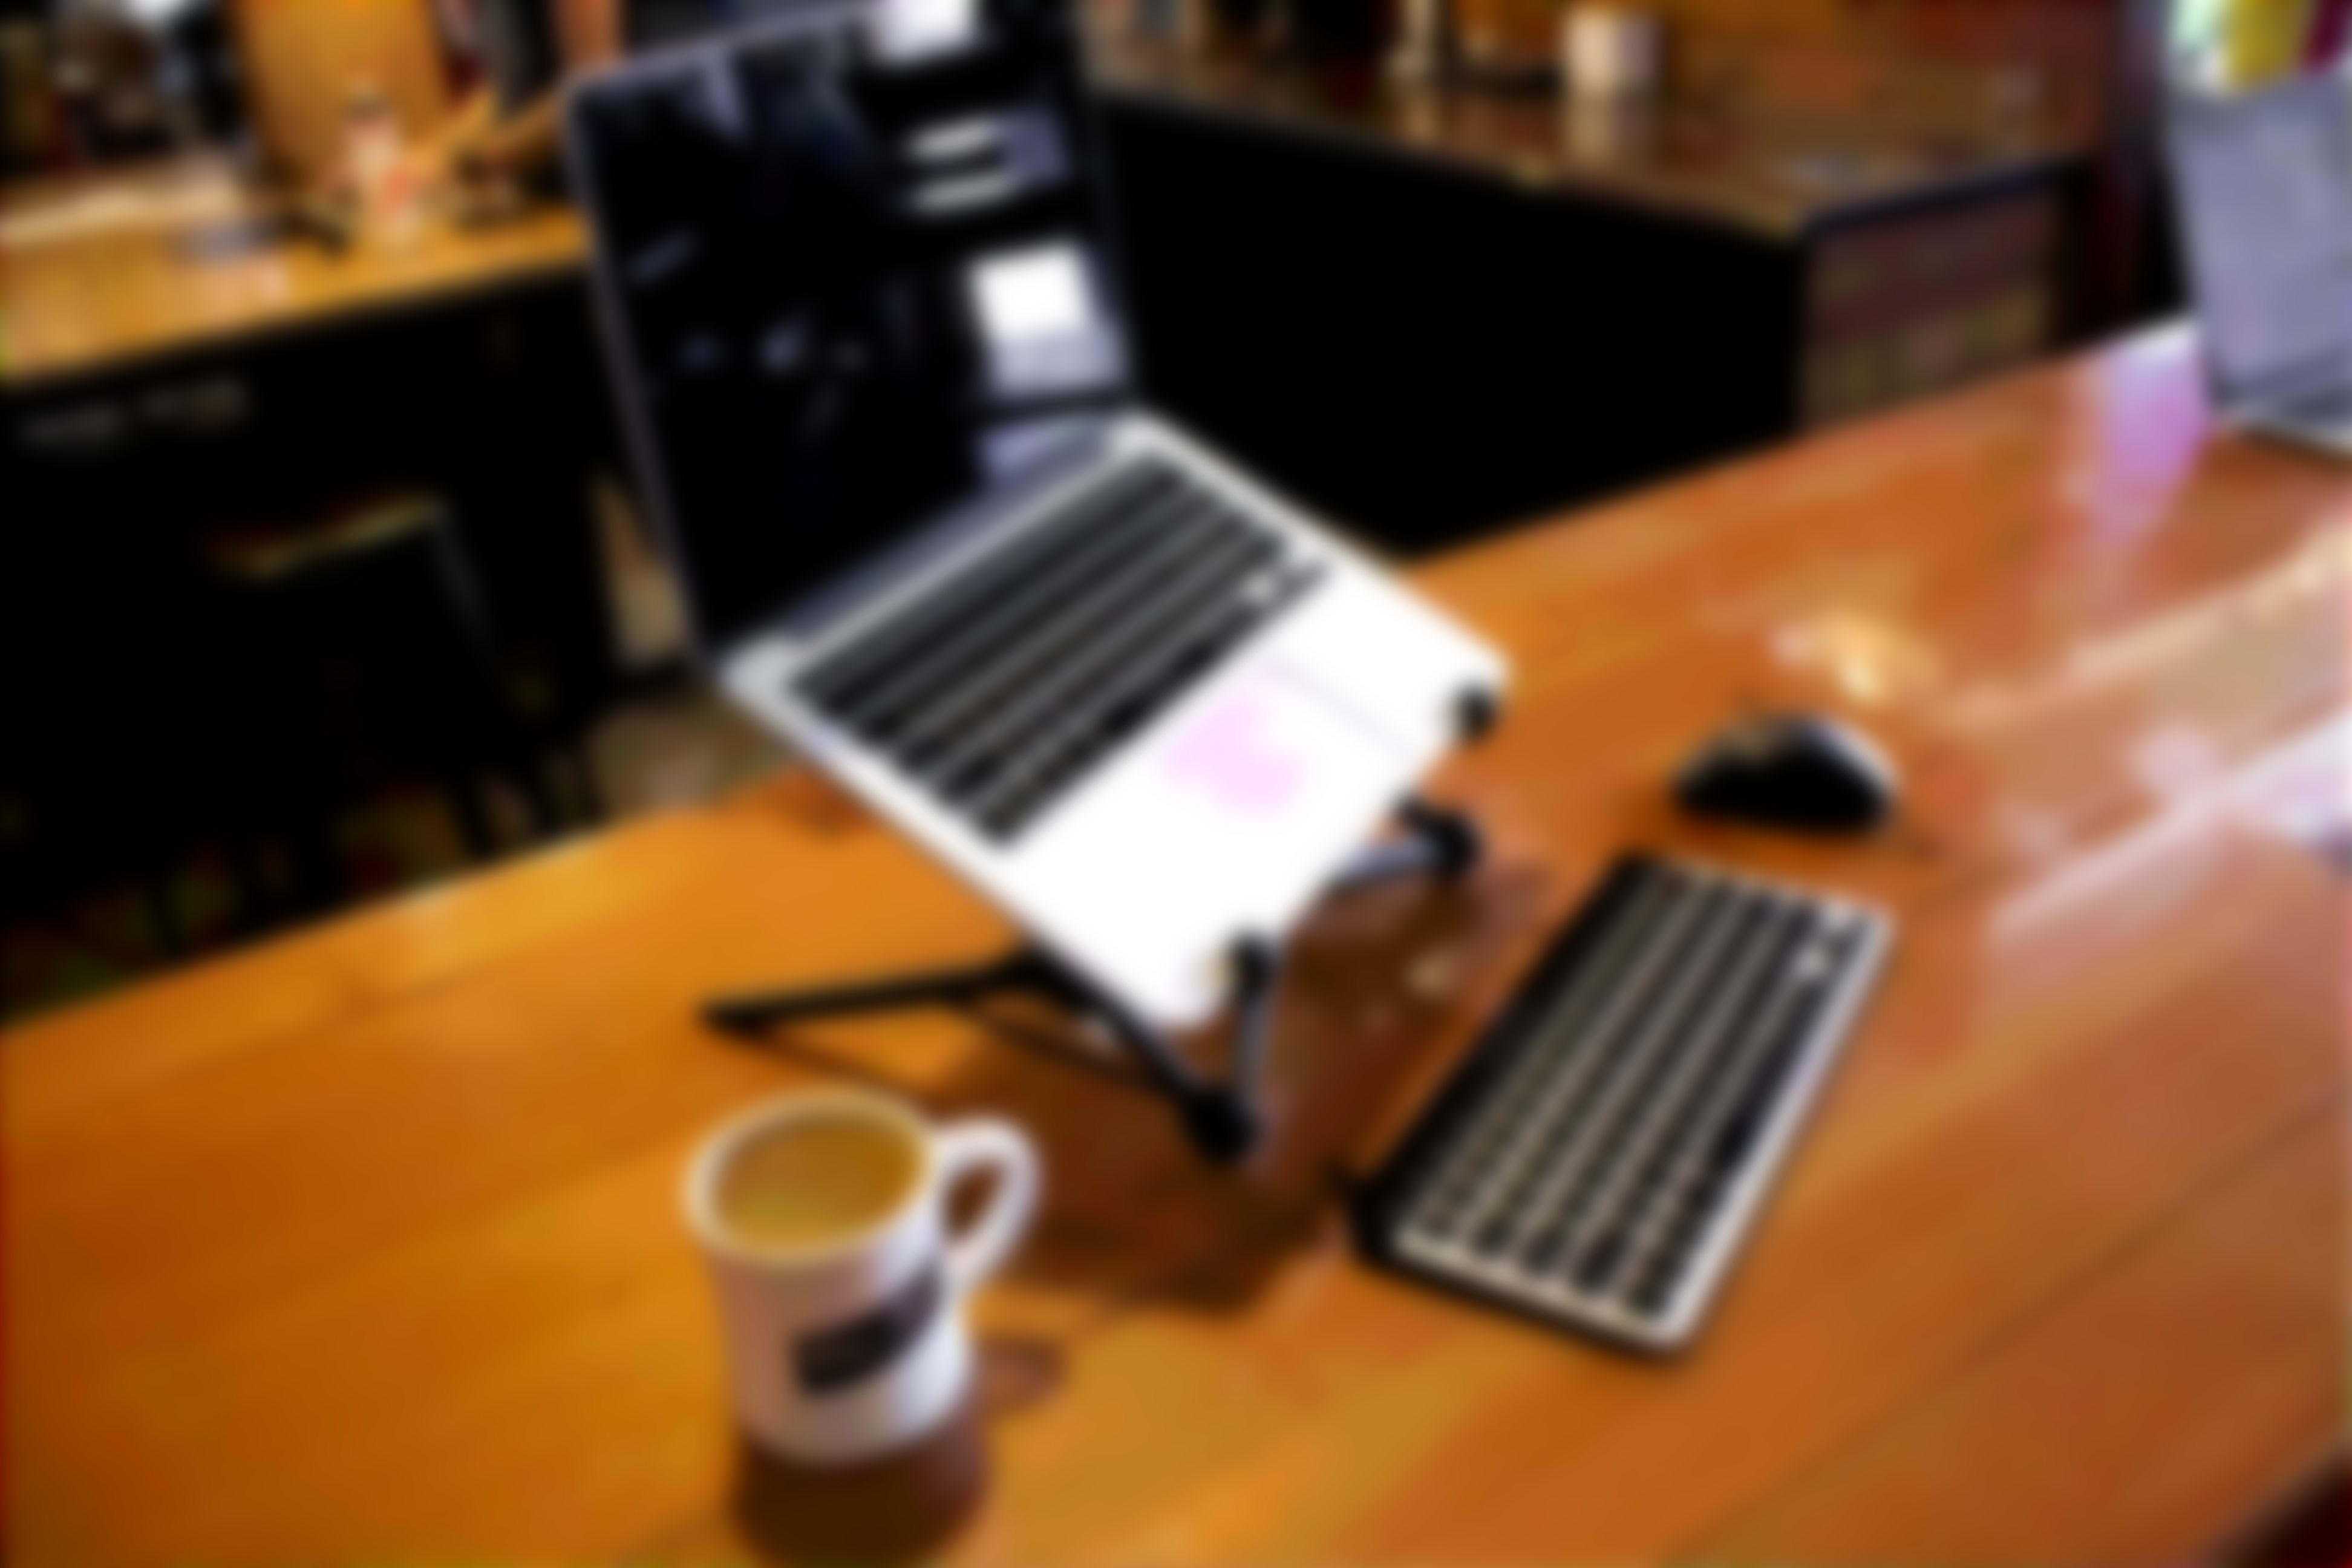 A roost with a computer on it being used at a coffee shop